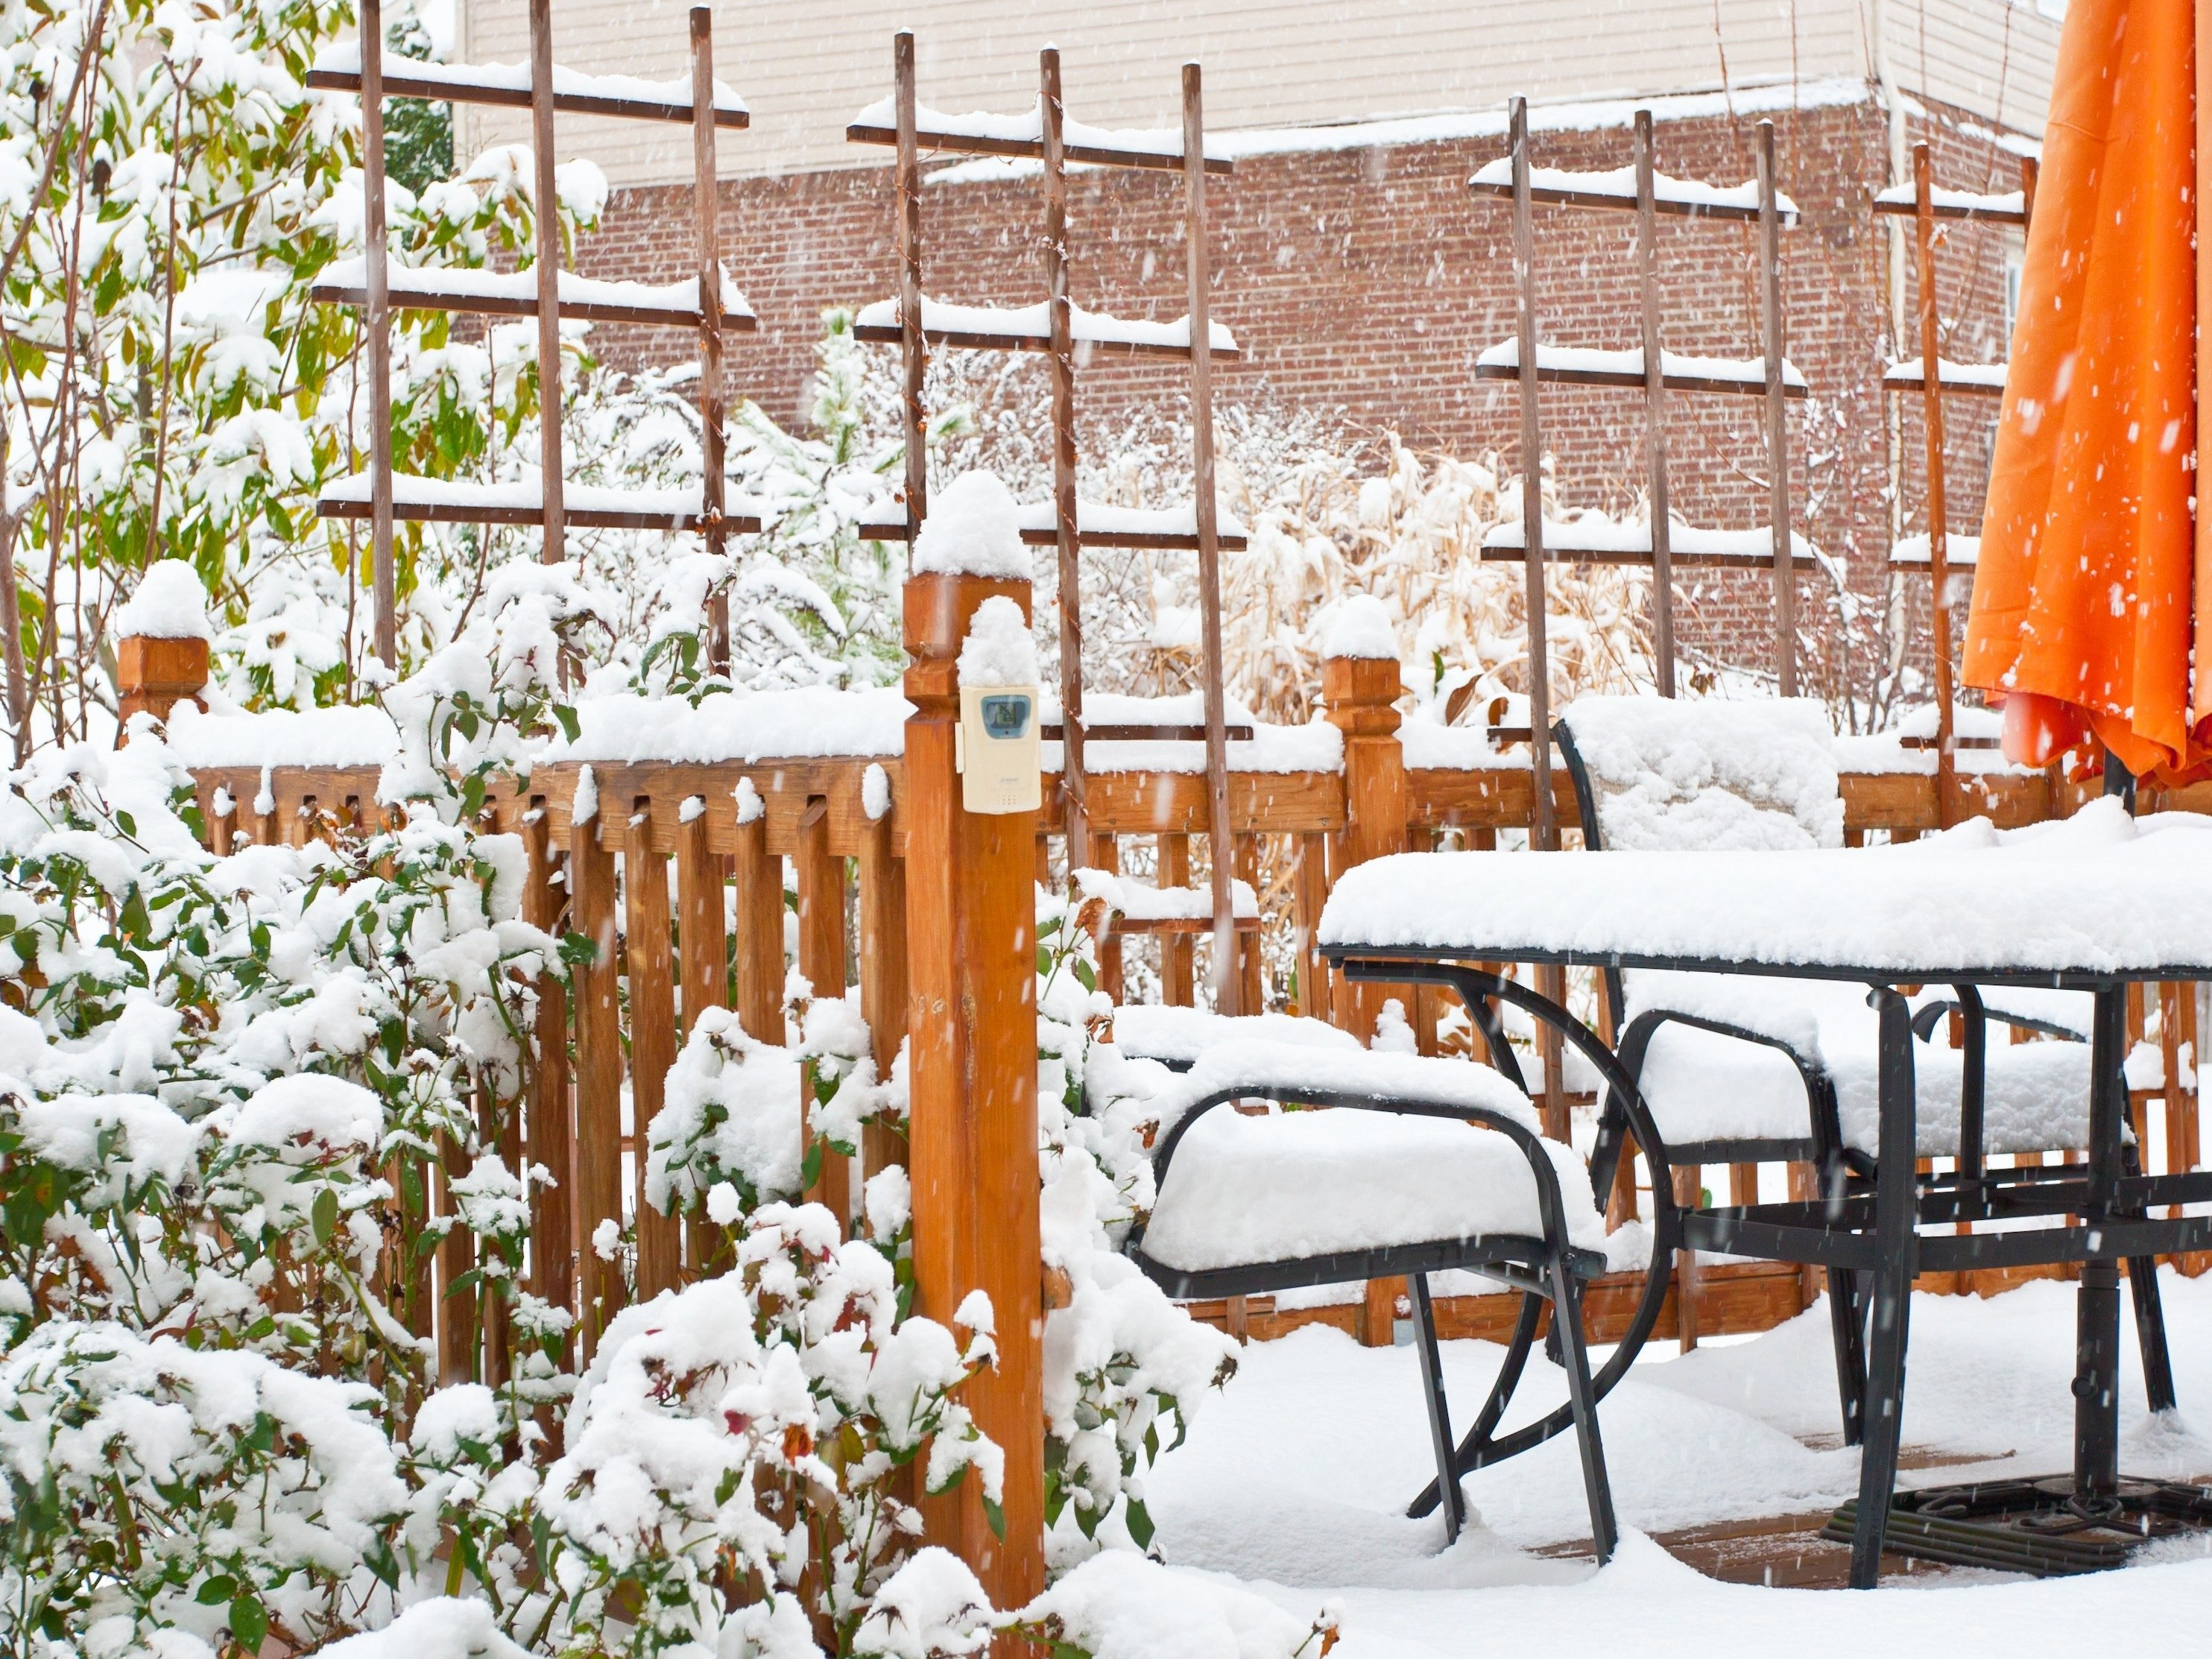 5. Winterize yard furniture and equipment.